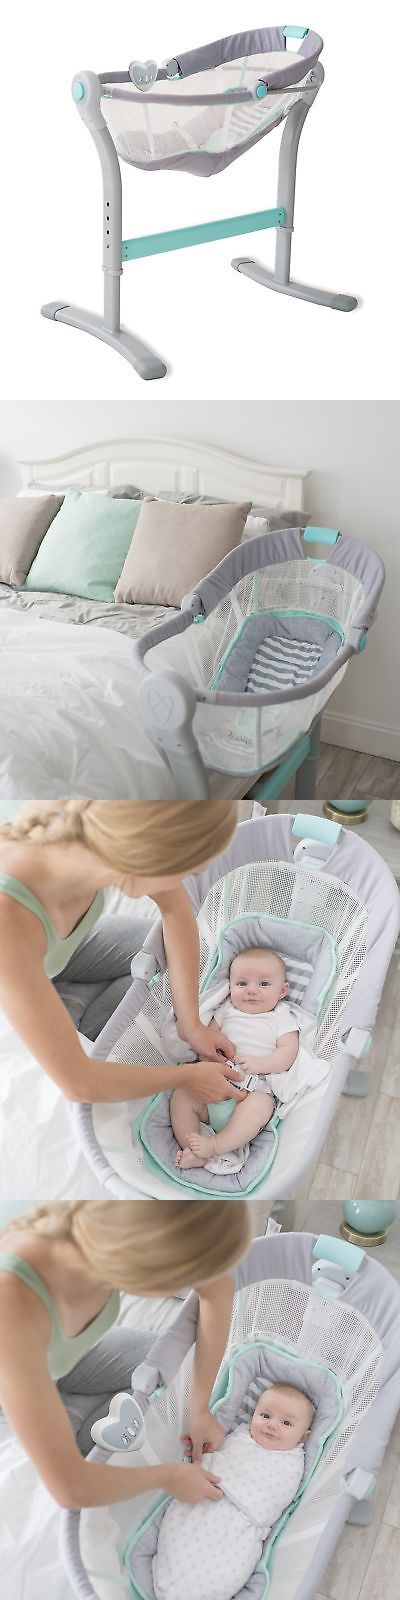 Baby Co-Sleepers 121152: Swaddleme By Your Bed Sleeper Bedside Sleeper -> BUY IT NOW ONLY: $106.02 on eBay!